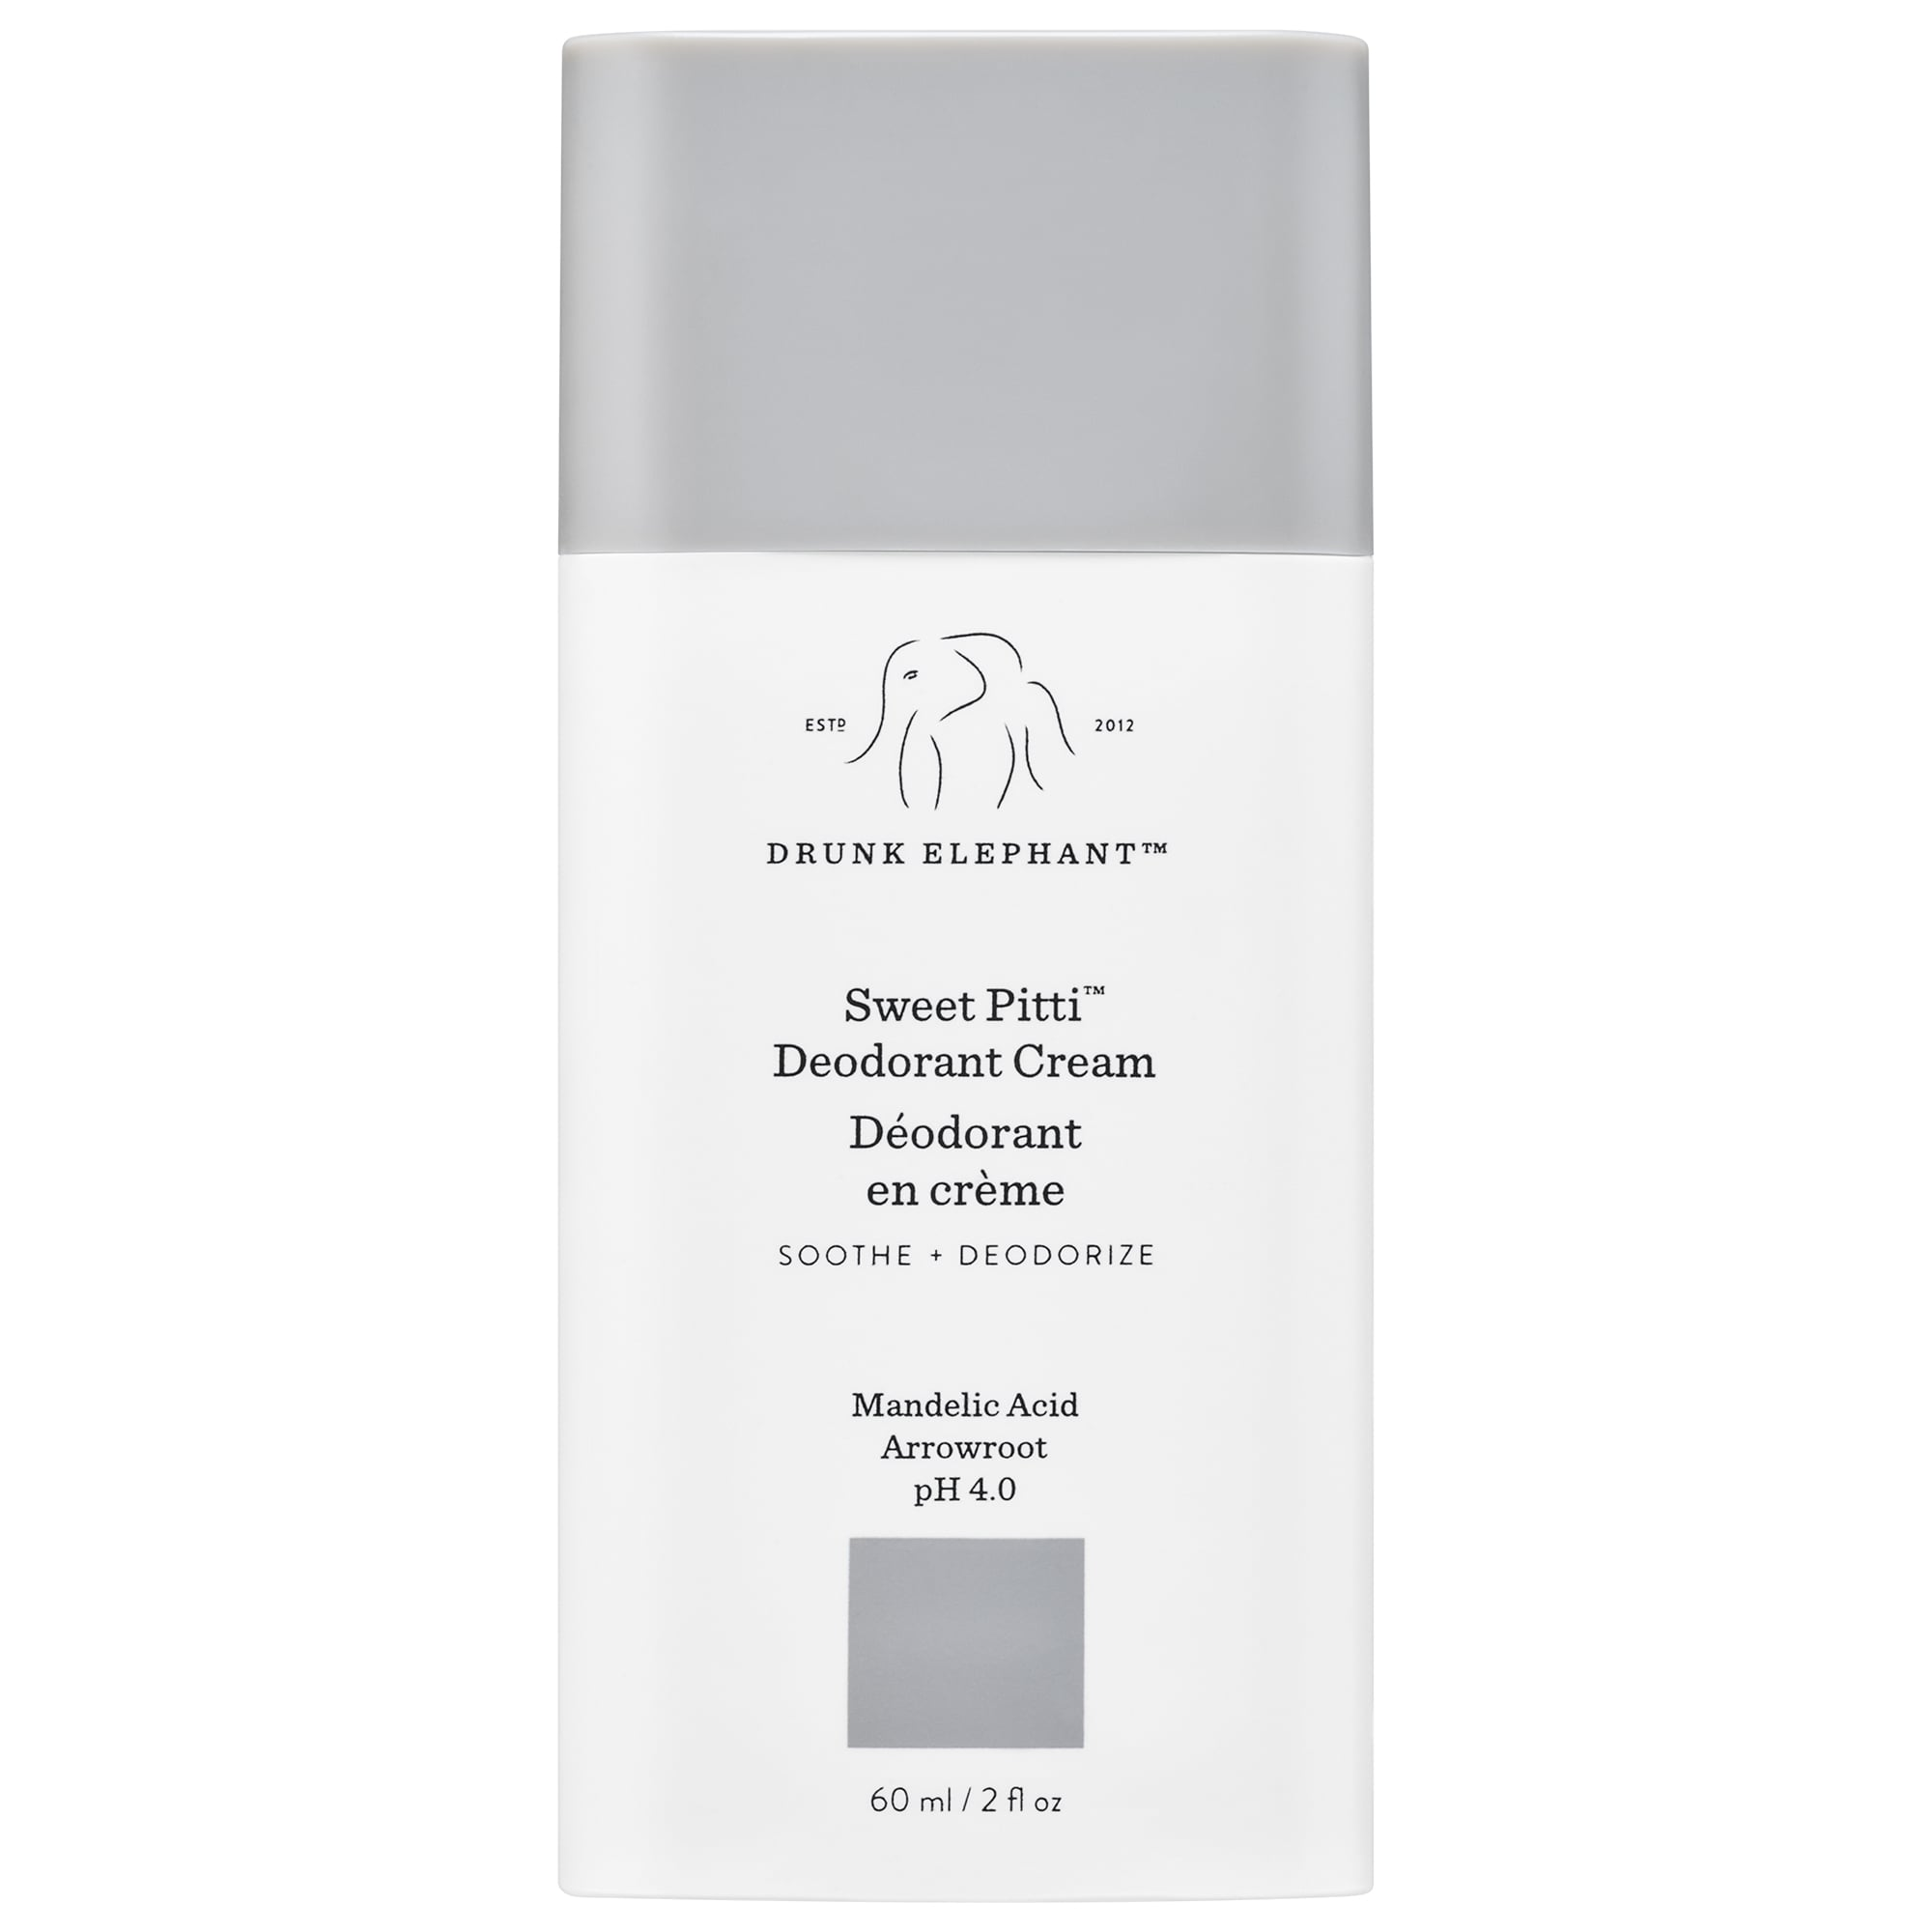 Drunk Elephant - Sweet Pitti™ Deodorant Cream